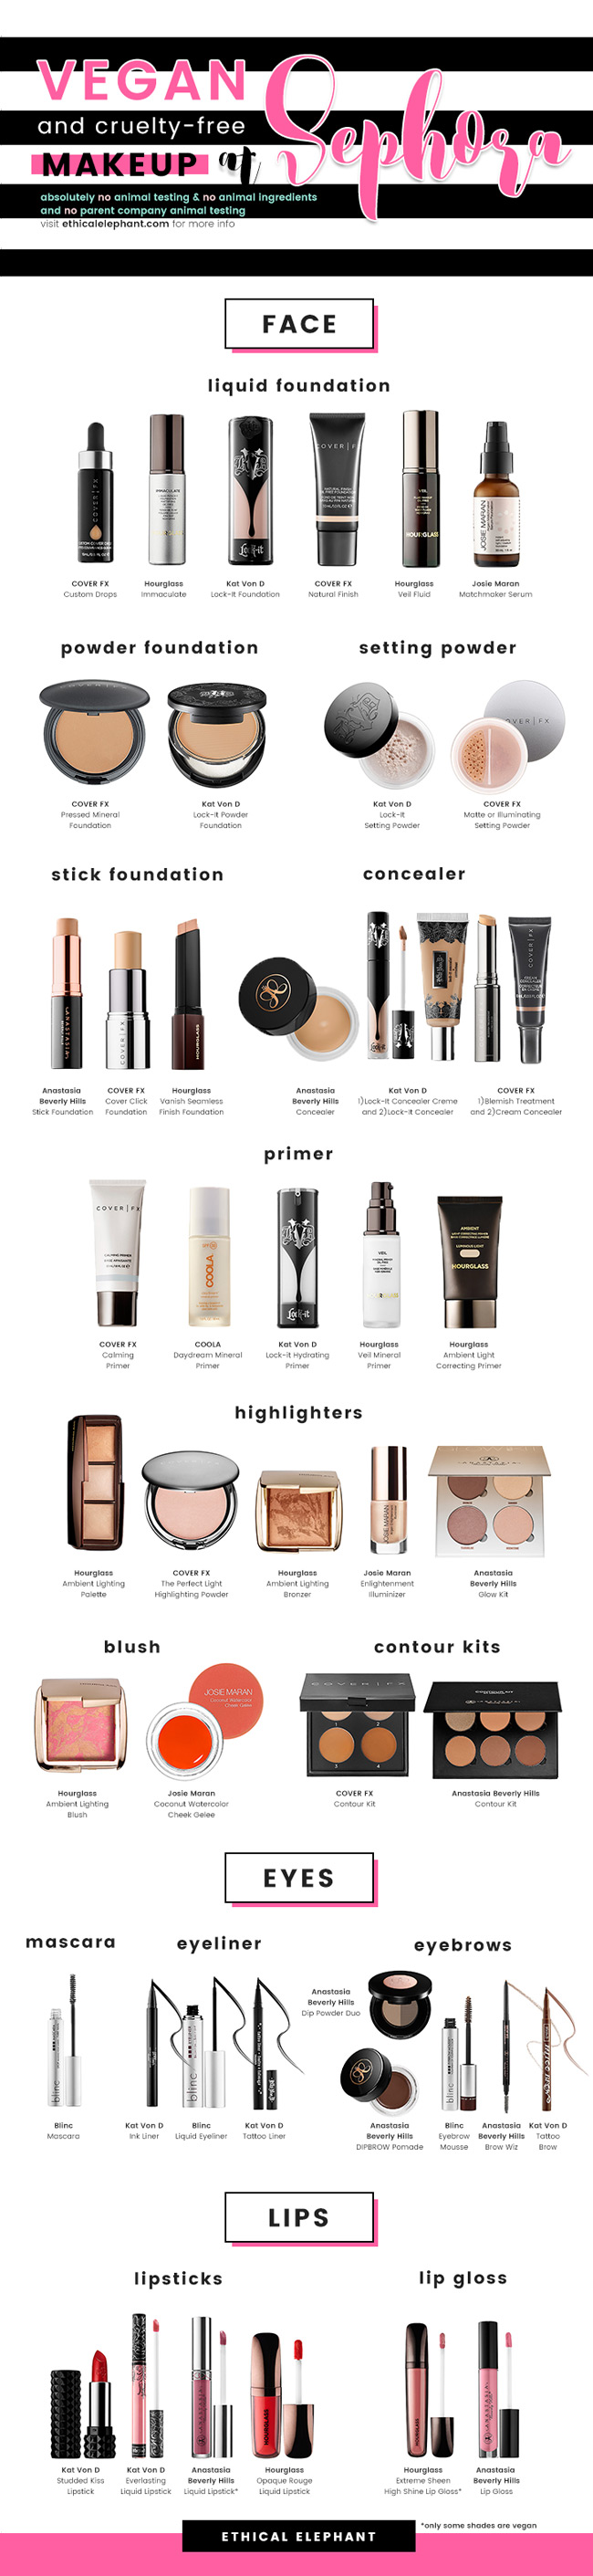 What High End Makeup Brands Are Vegan